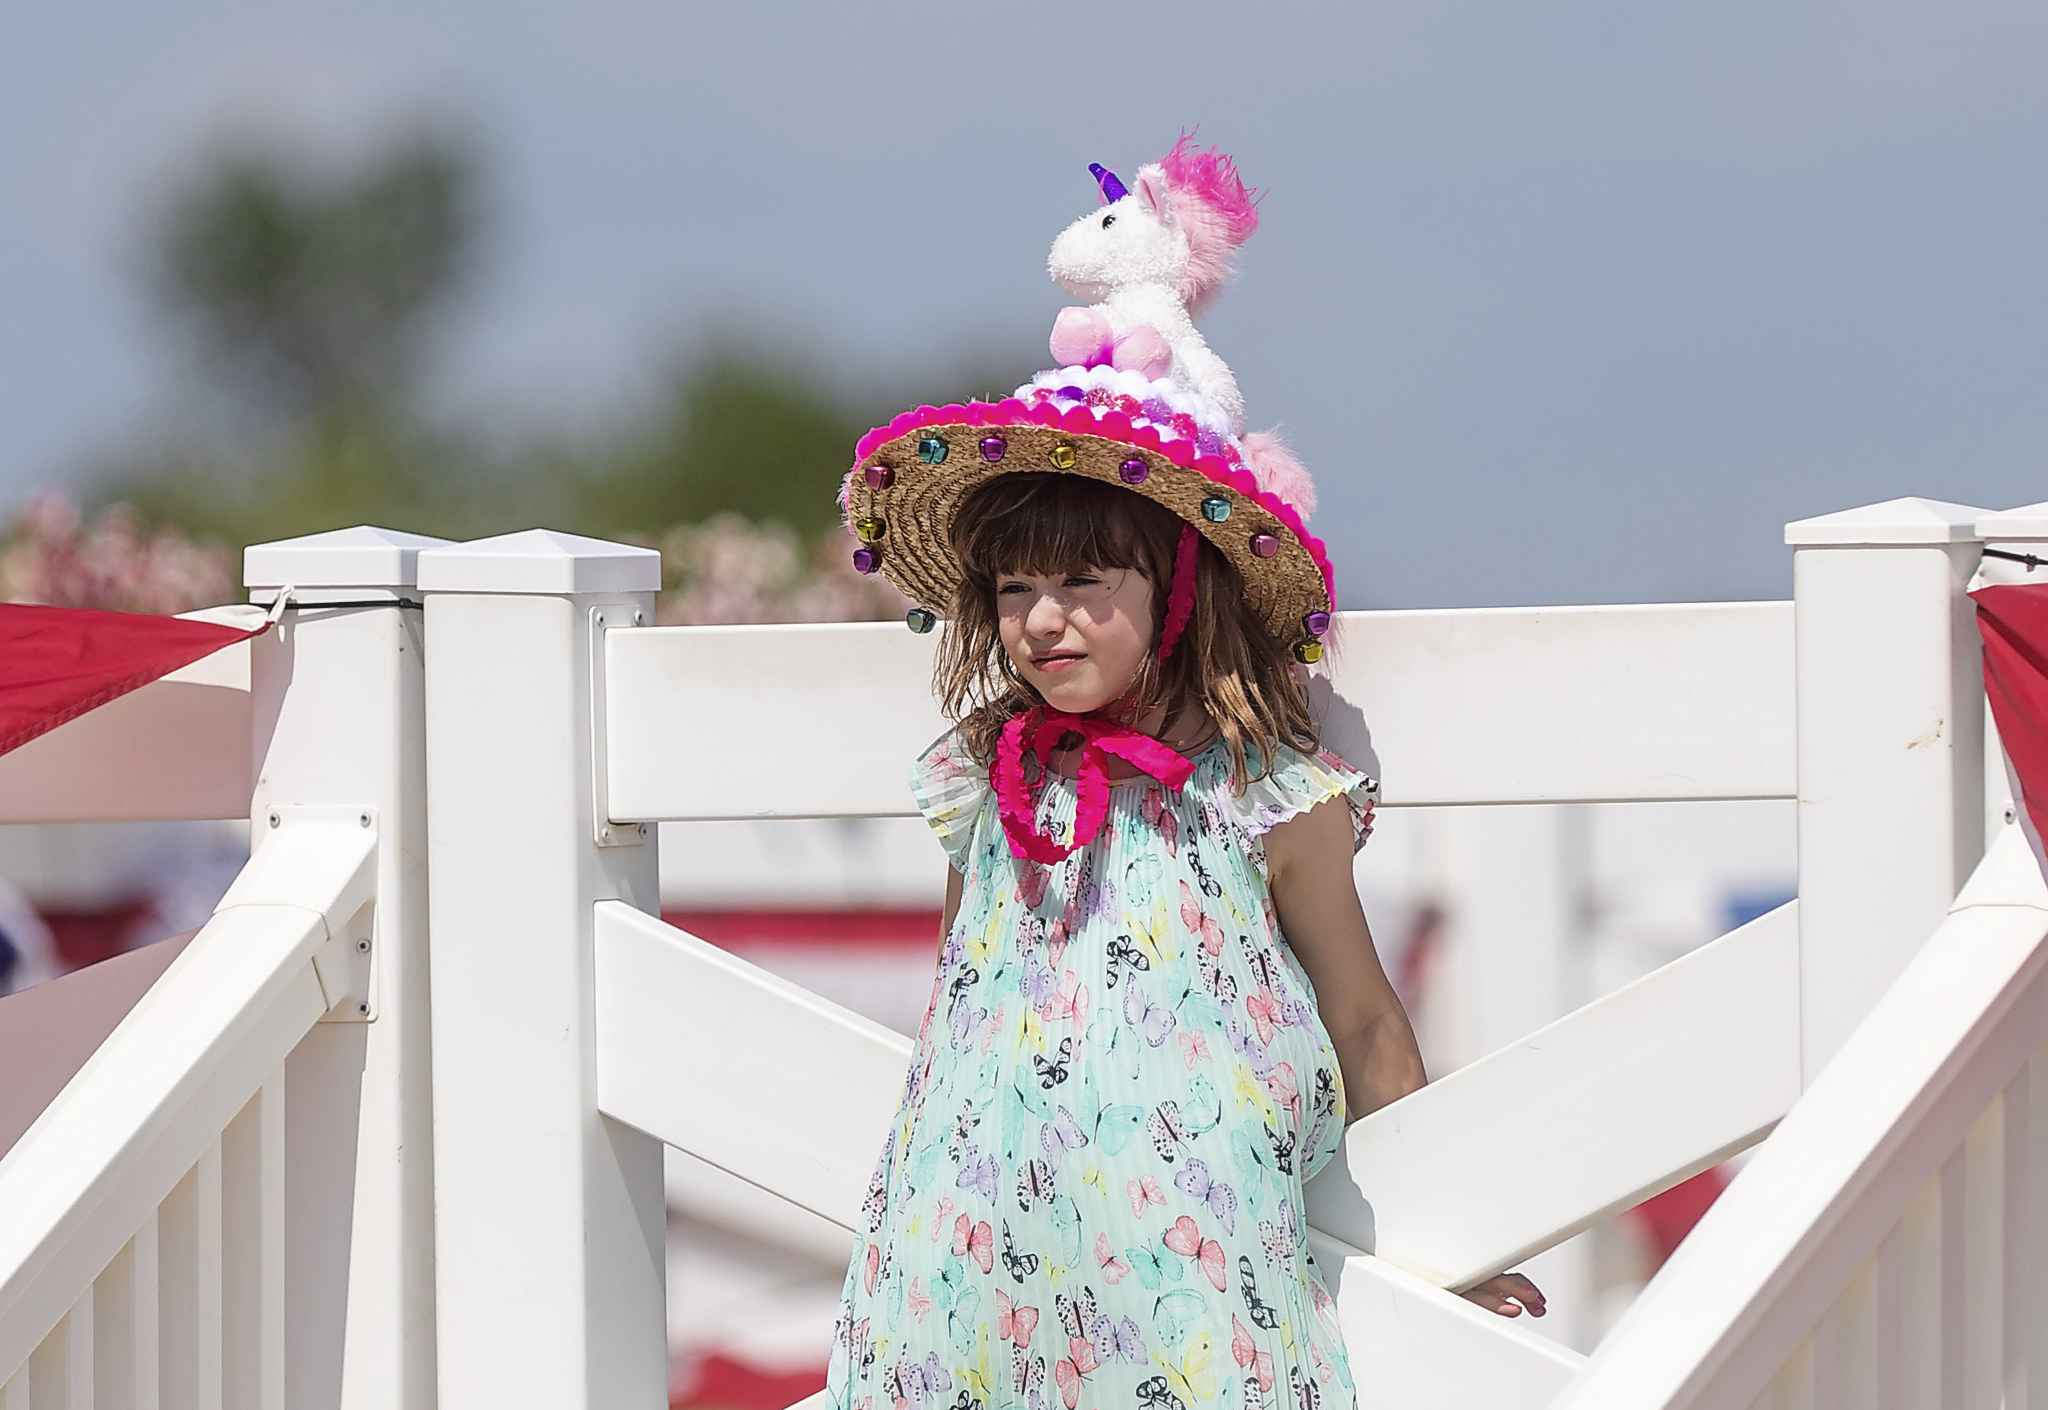 Maeve Millard-Hales shows off her fancy unicorn hat at the Manitoba Derby Monday afternoon at Assiniboia Downs.